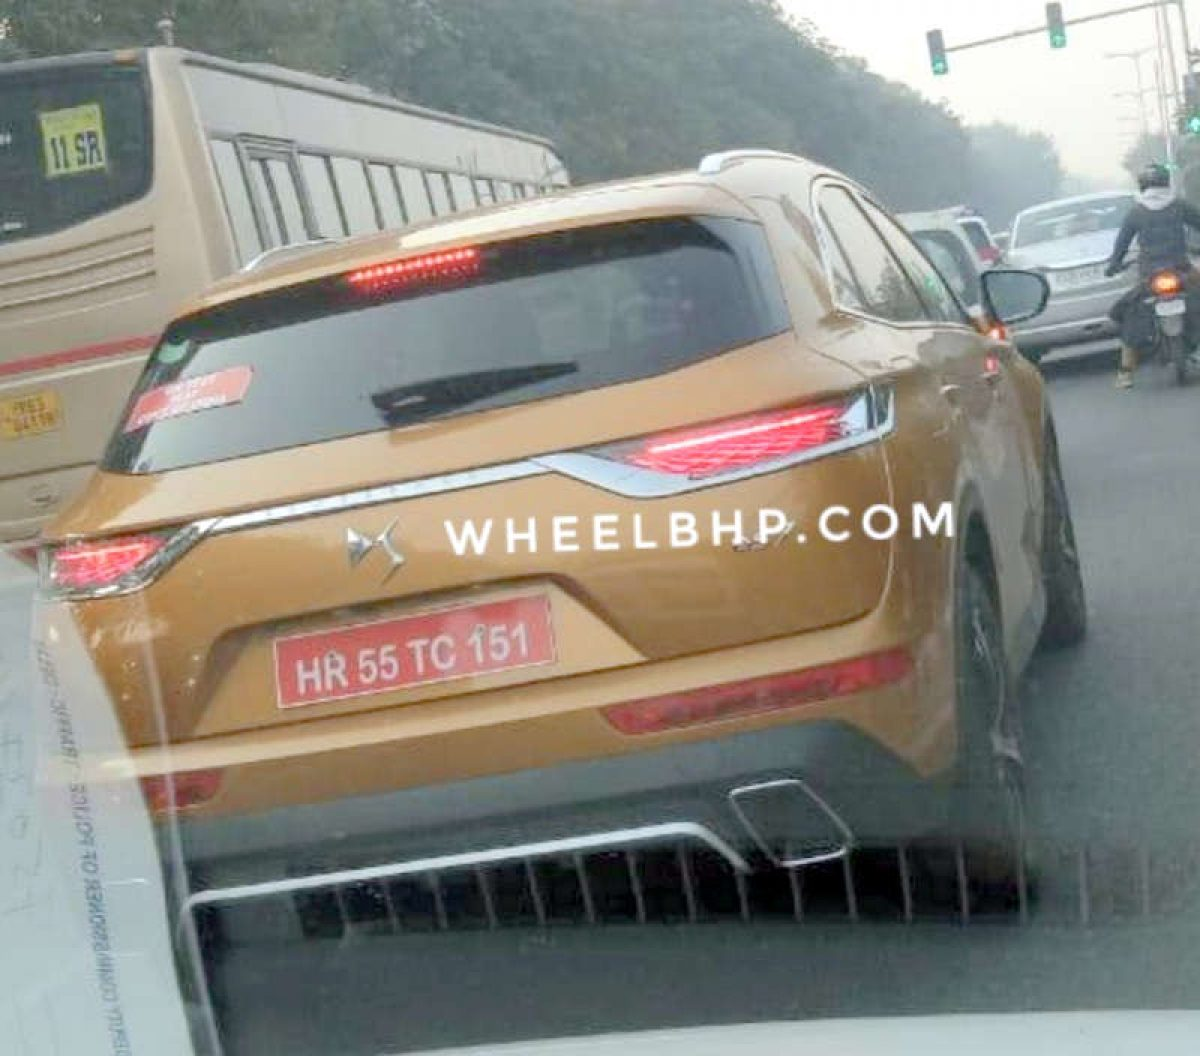 Peugeot Testing Ds7 Suv In India Spied With Tata Harrier Like Orange Colour